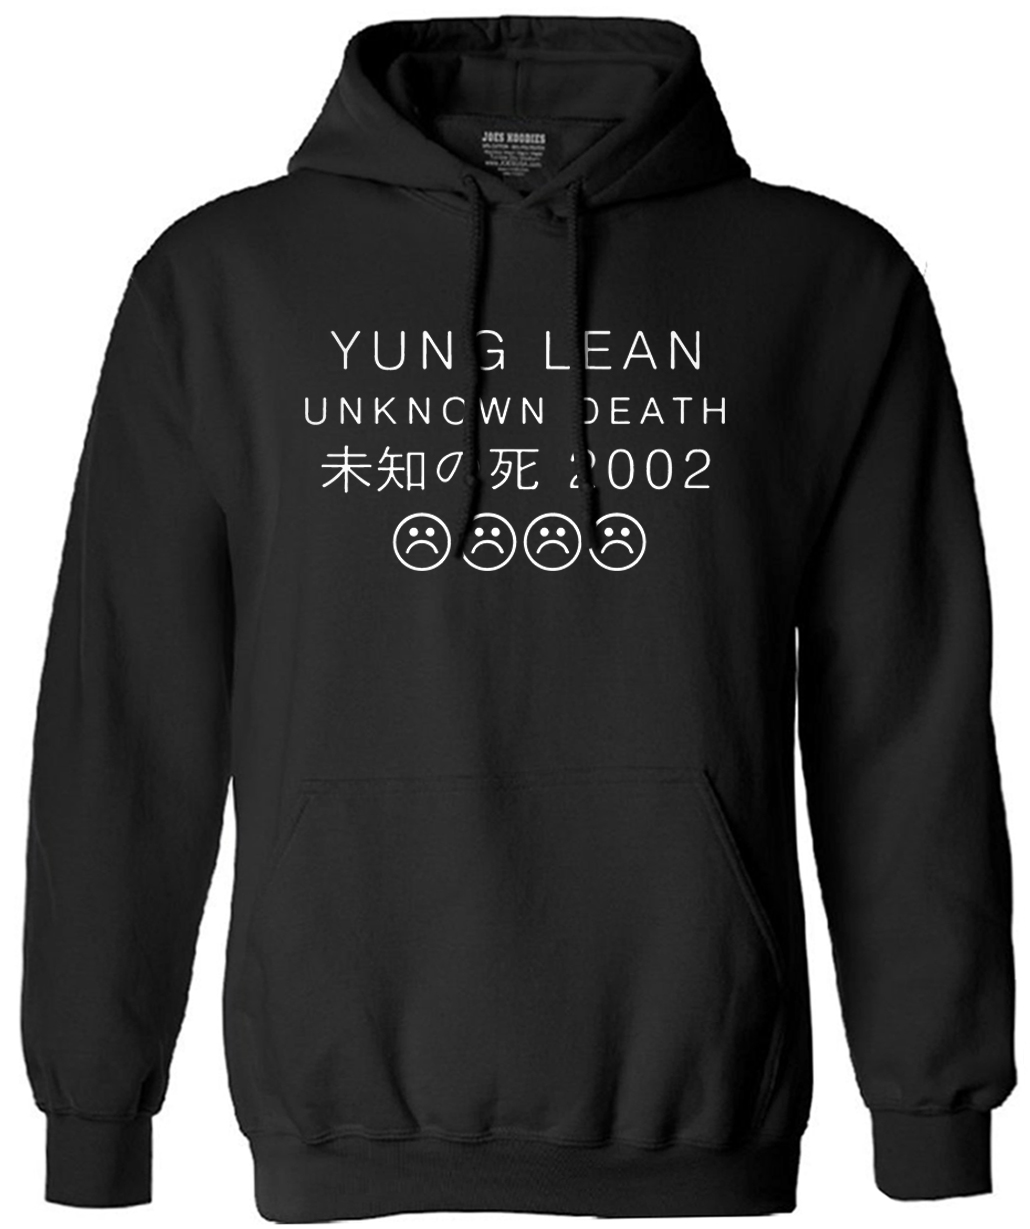 YUNG LEAN UNKNOWN DEATH Sad Boys Sweatshirt Men Cotton Long Sleeve Autumn Male Tracksuit Man's Man Brand Clothing Hoody Hooded